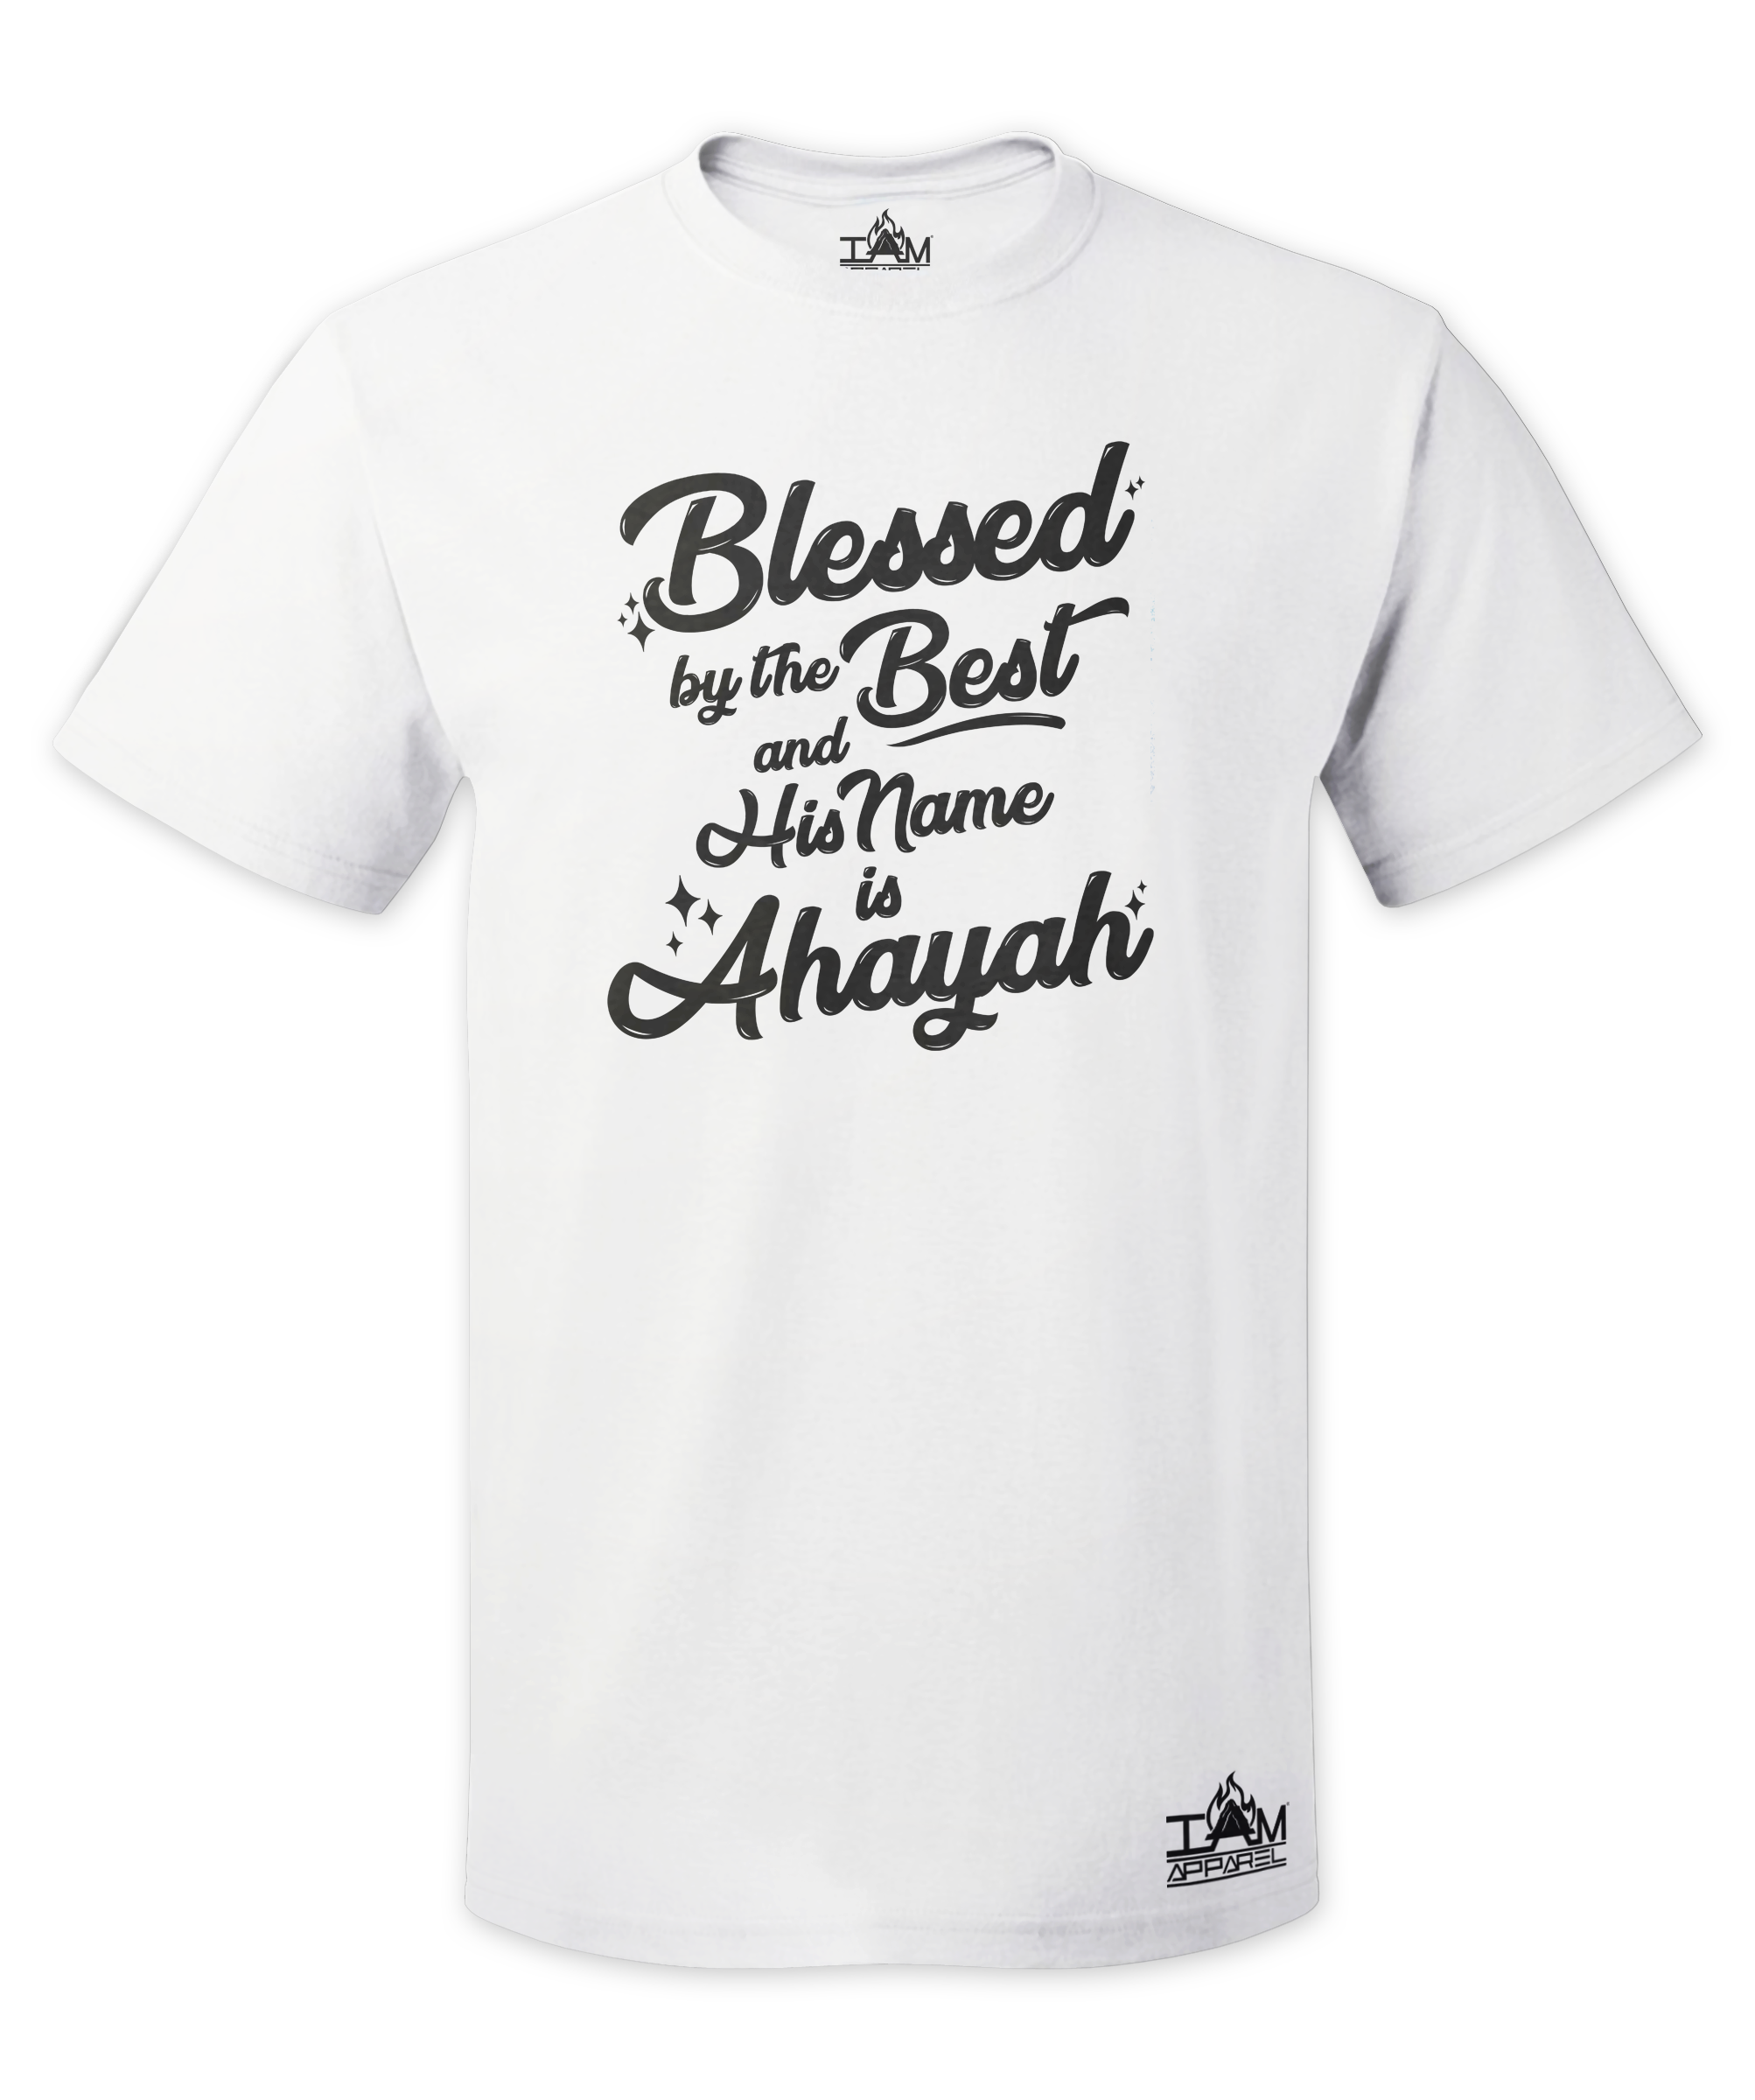 Men's Blessed by the best Short Sleeved T-shirt 00083